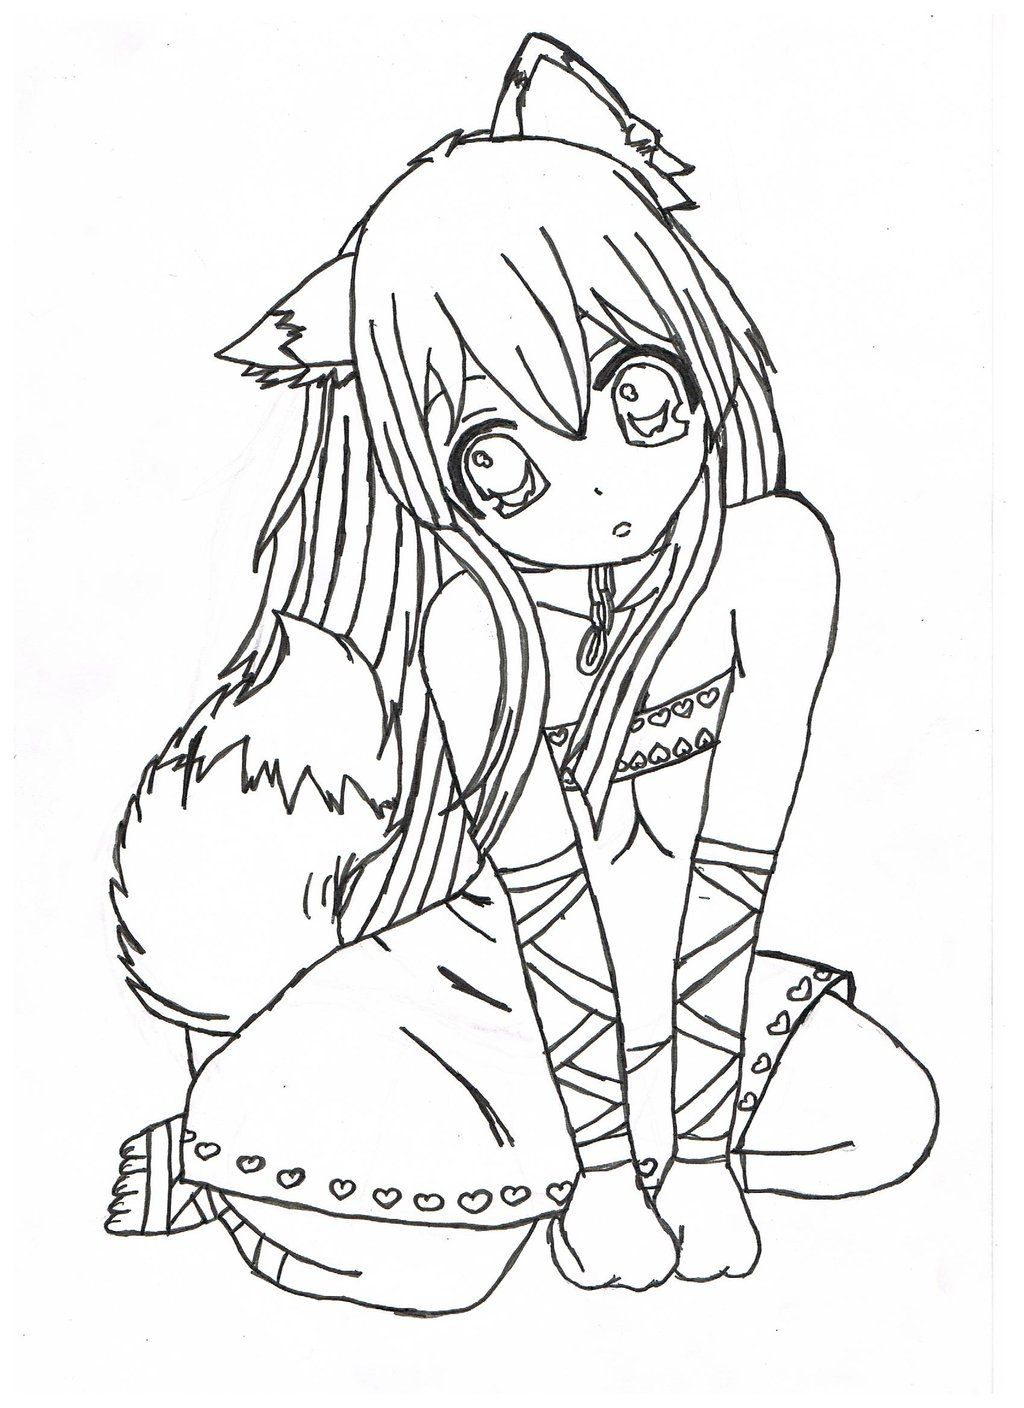 manga girl coloring pages.html